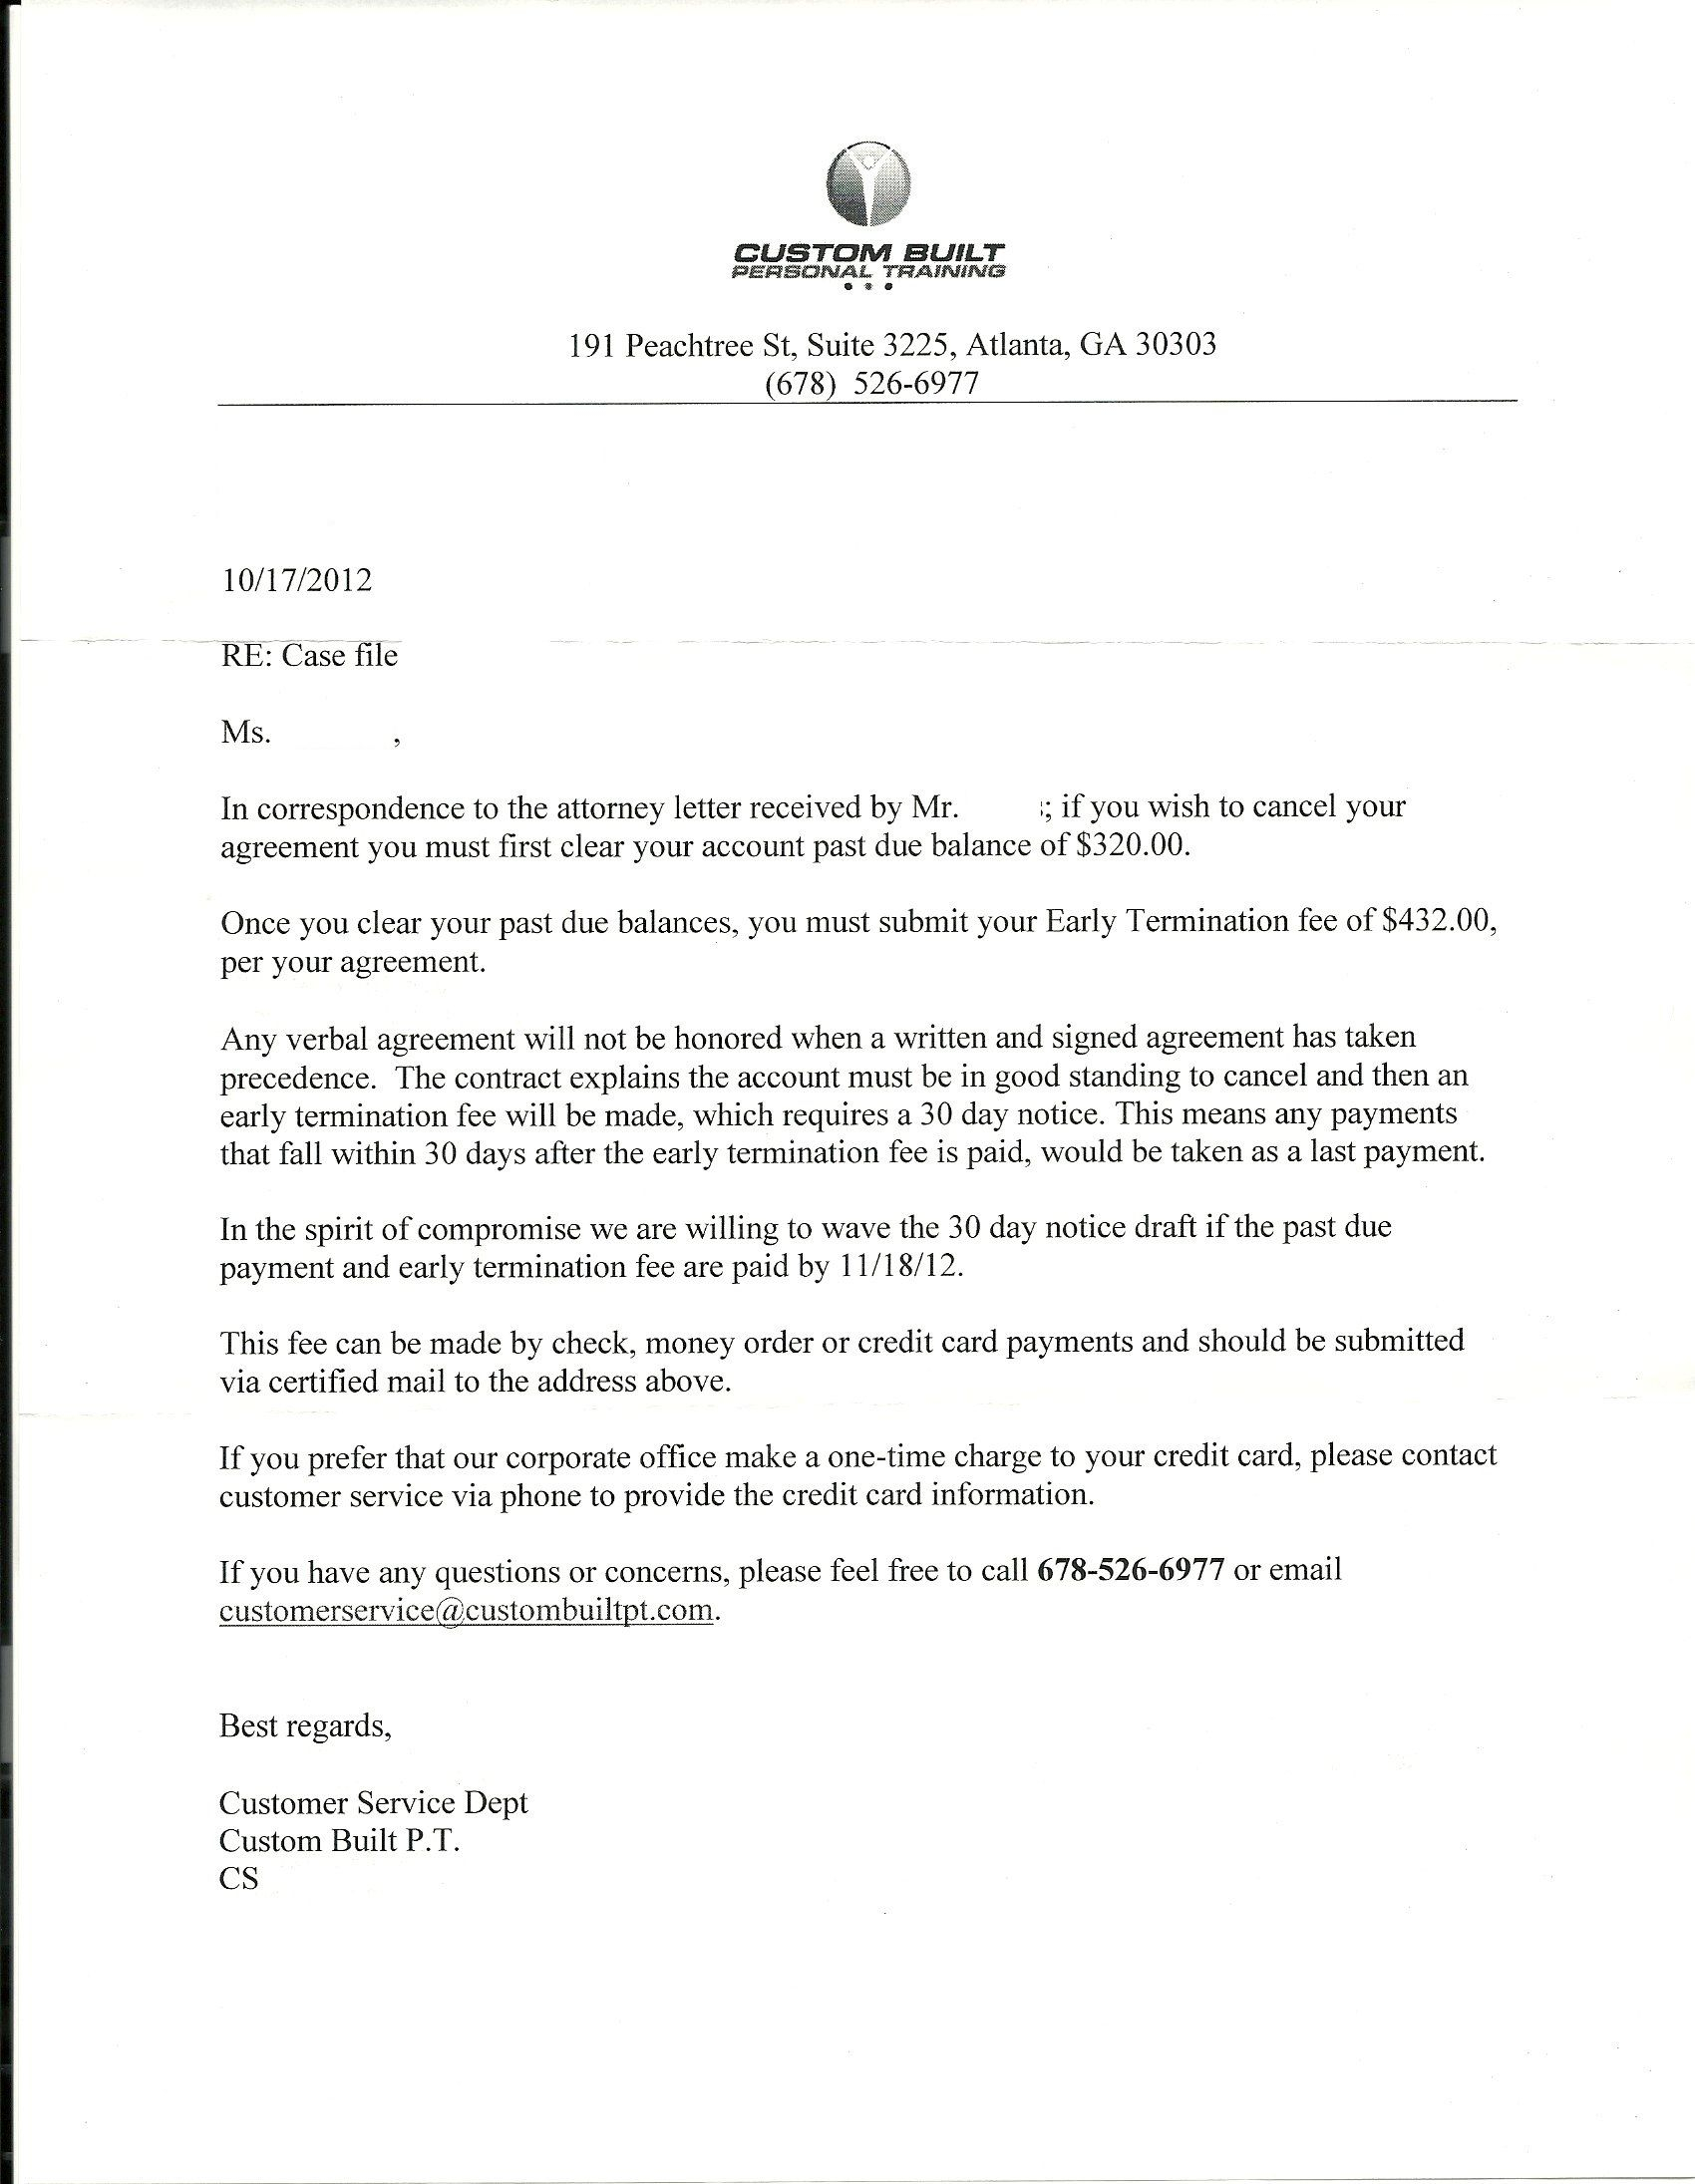 Late Rent Letter Template - Negative Response Of Seller to Claim Letter Saferbrowser Yahoo